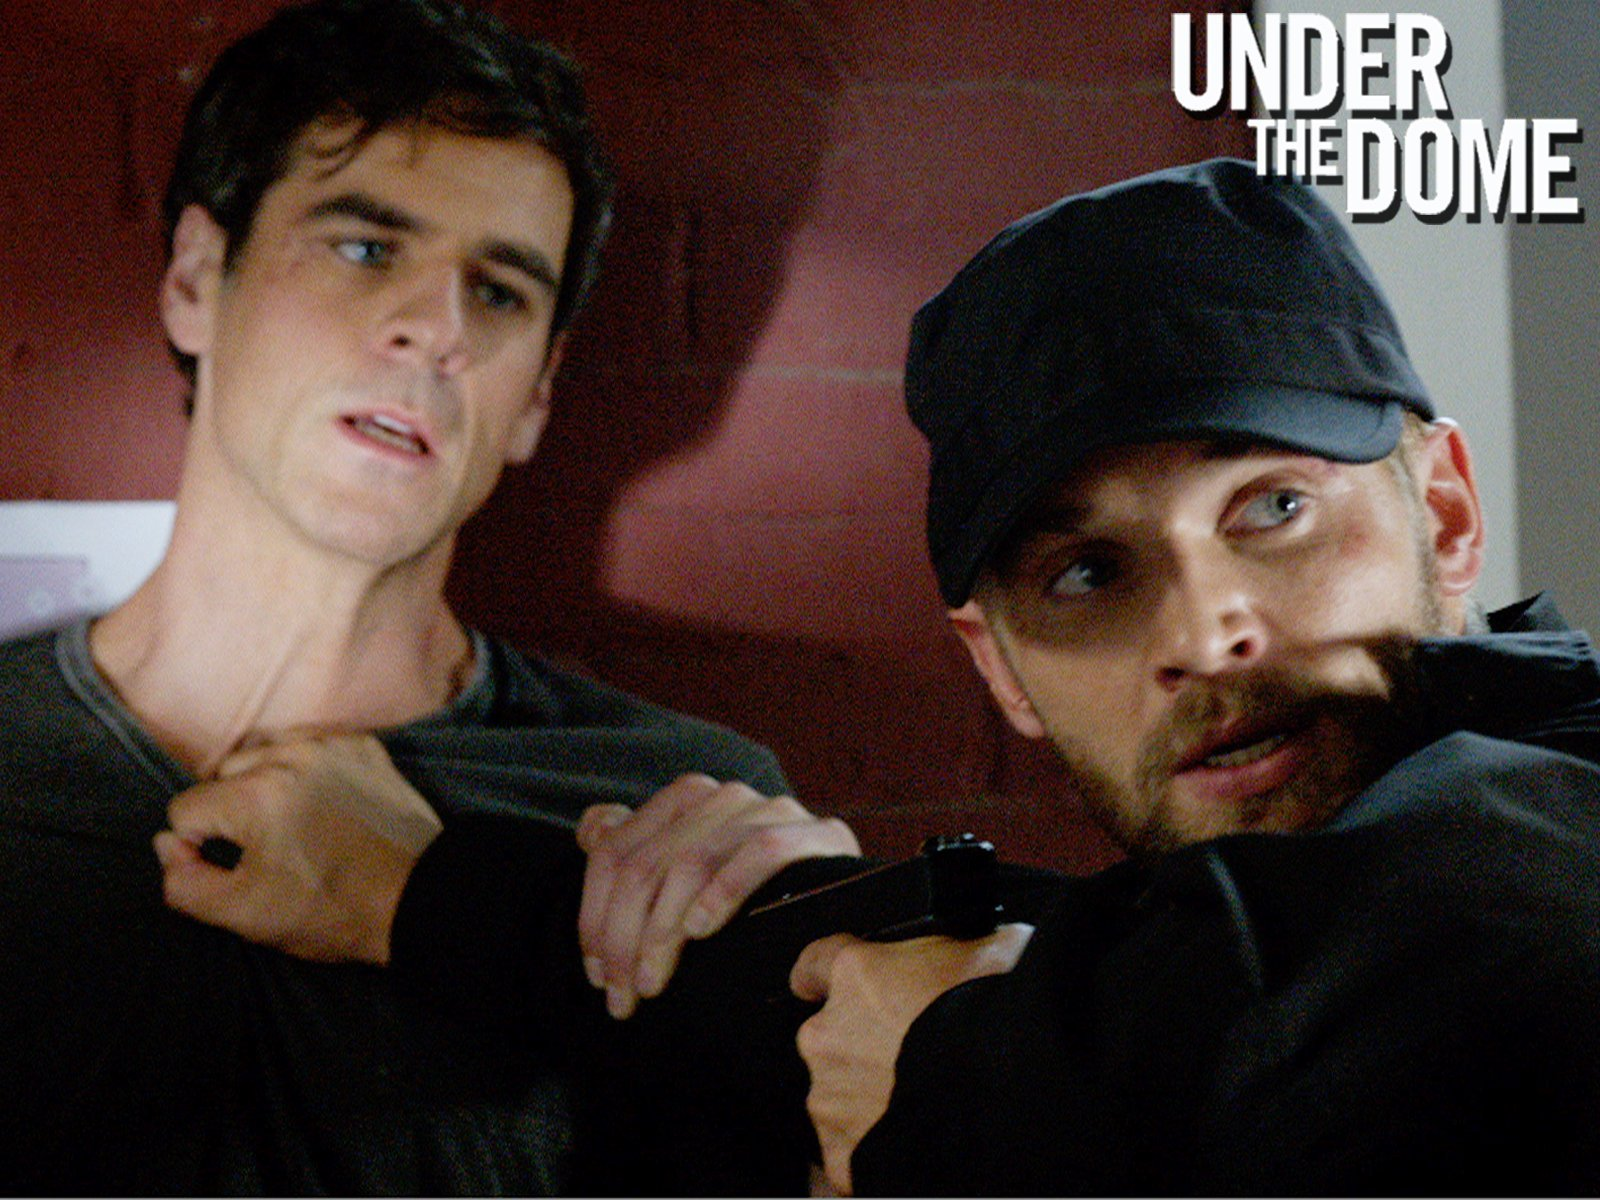 under the dome saison 1 episode 10 streaming